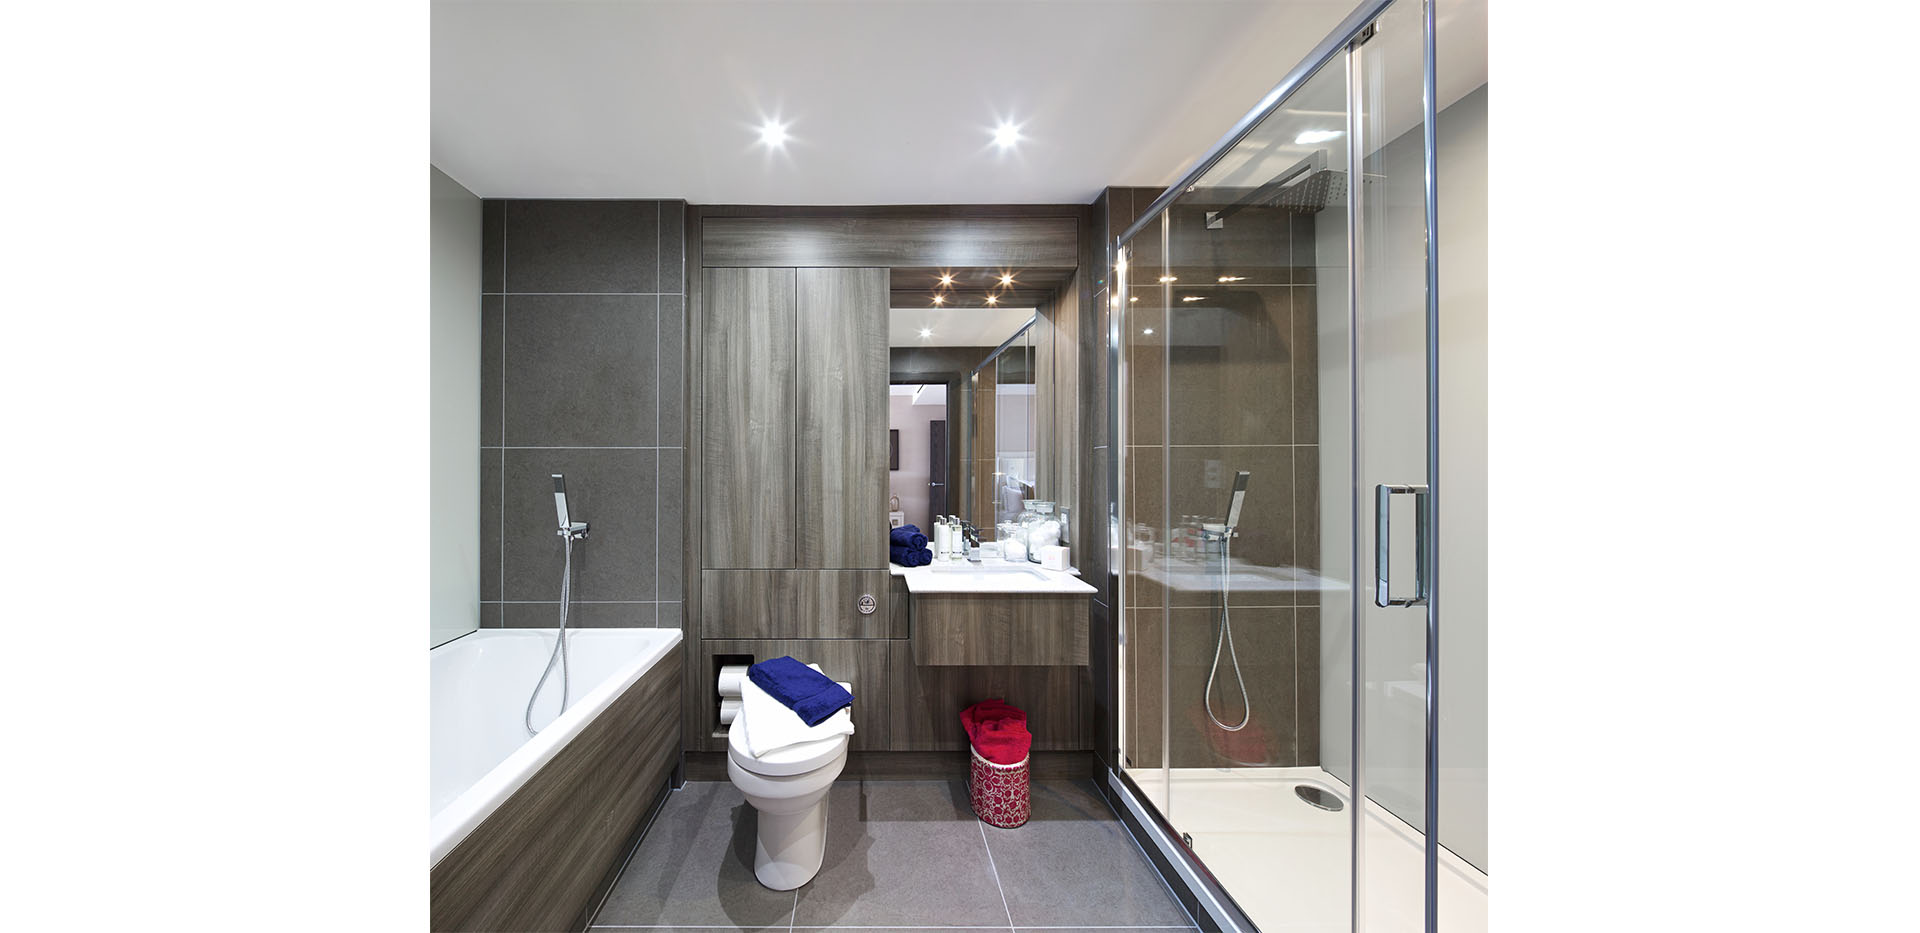 St George, Beaufort Park, 3 Bed Premier Bathroom